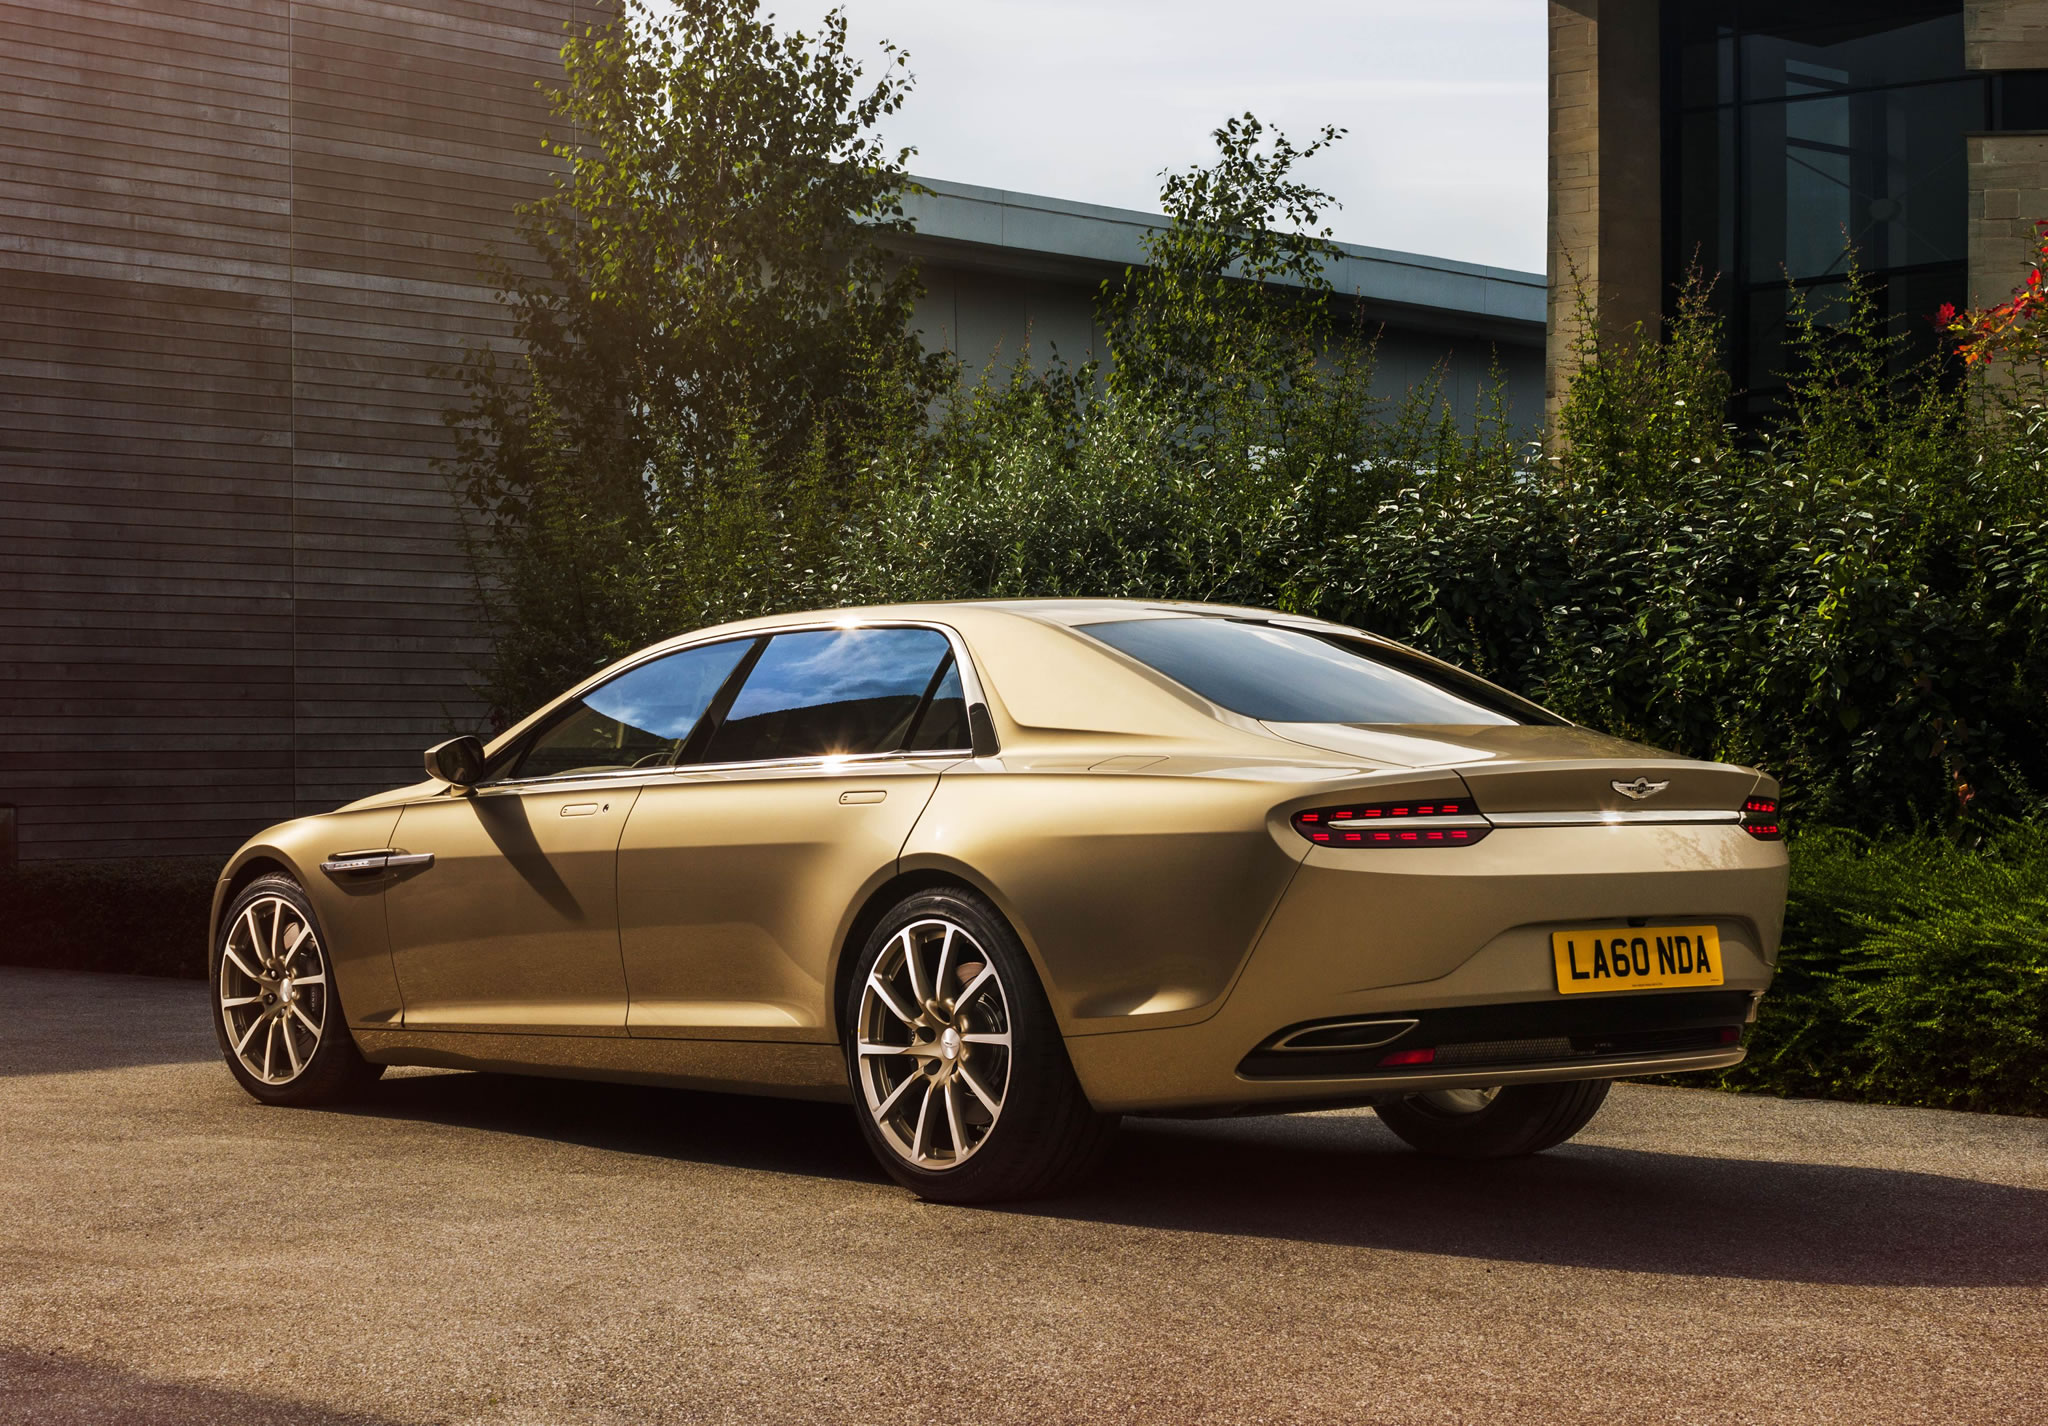 2015 Aston Martin Lagonda Taraf Rear Photo Bespoke